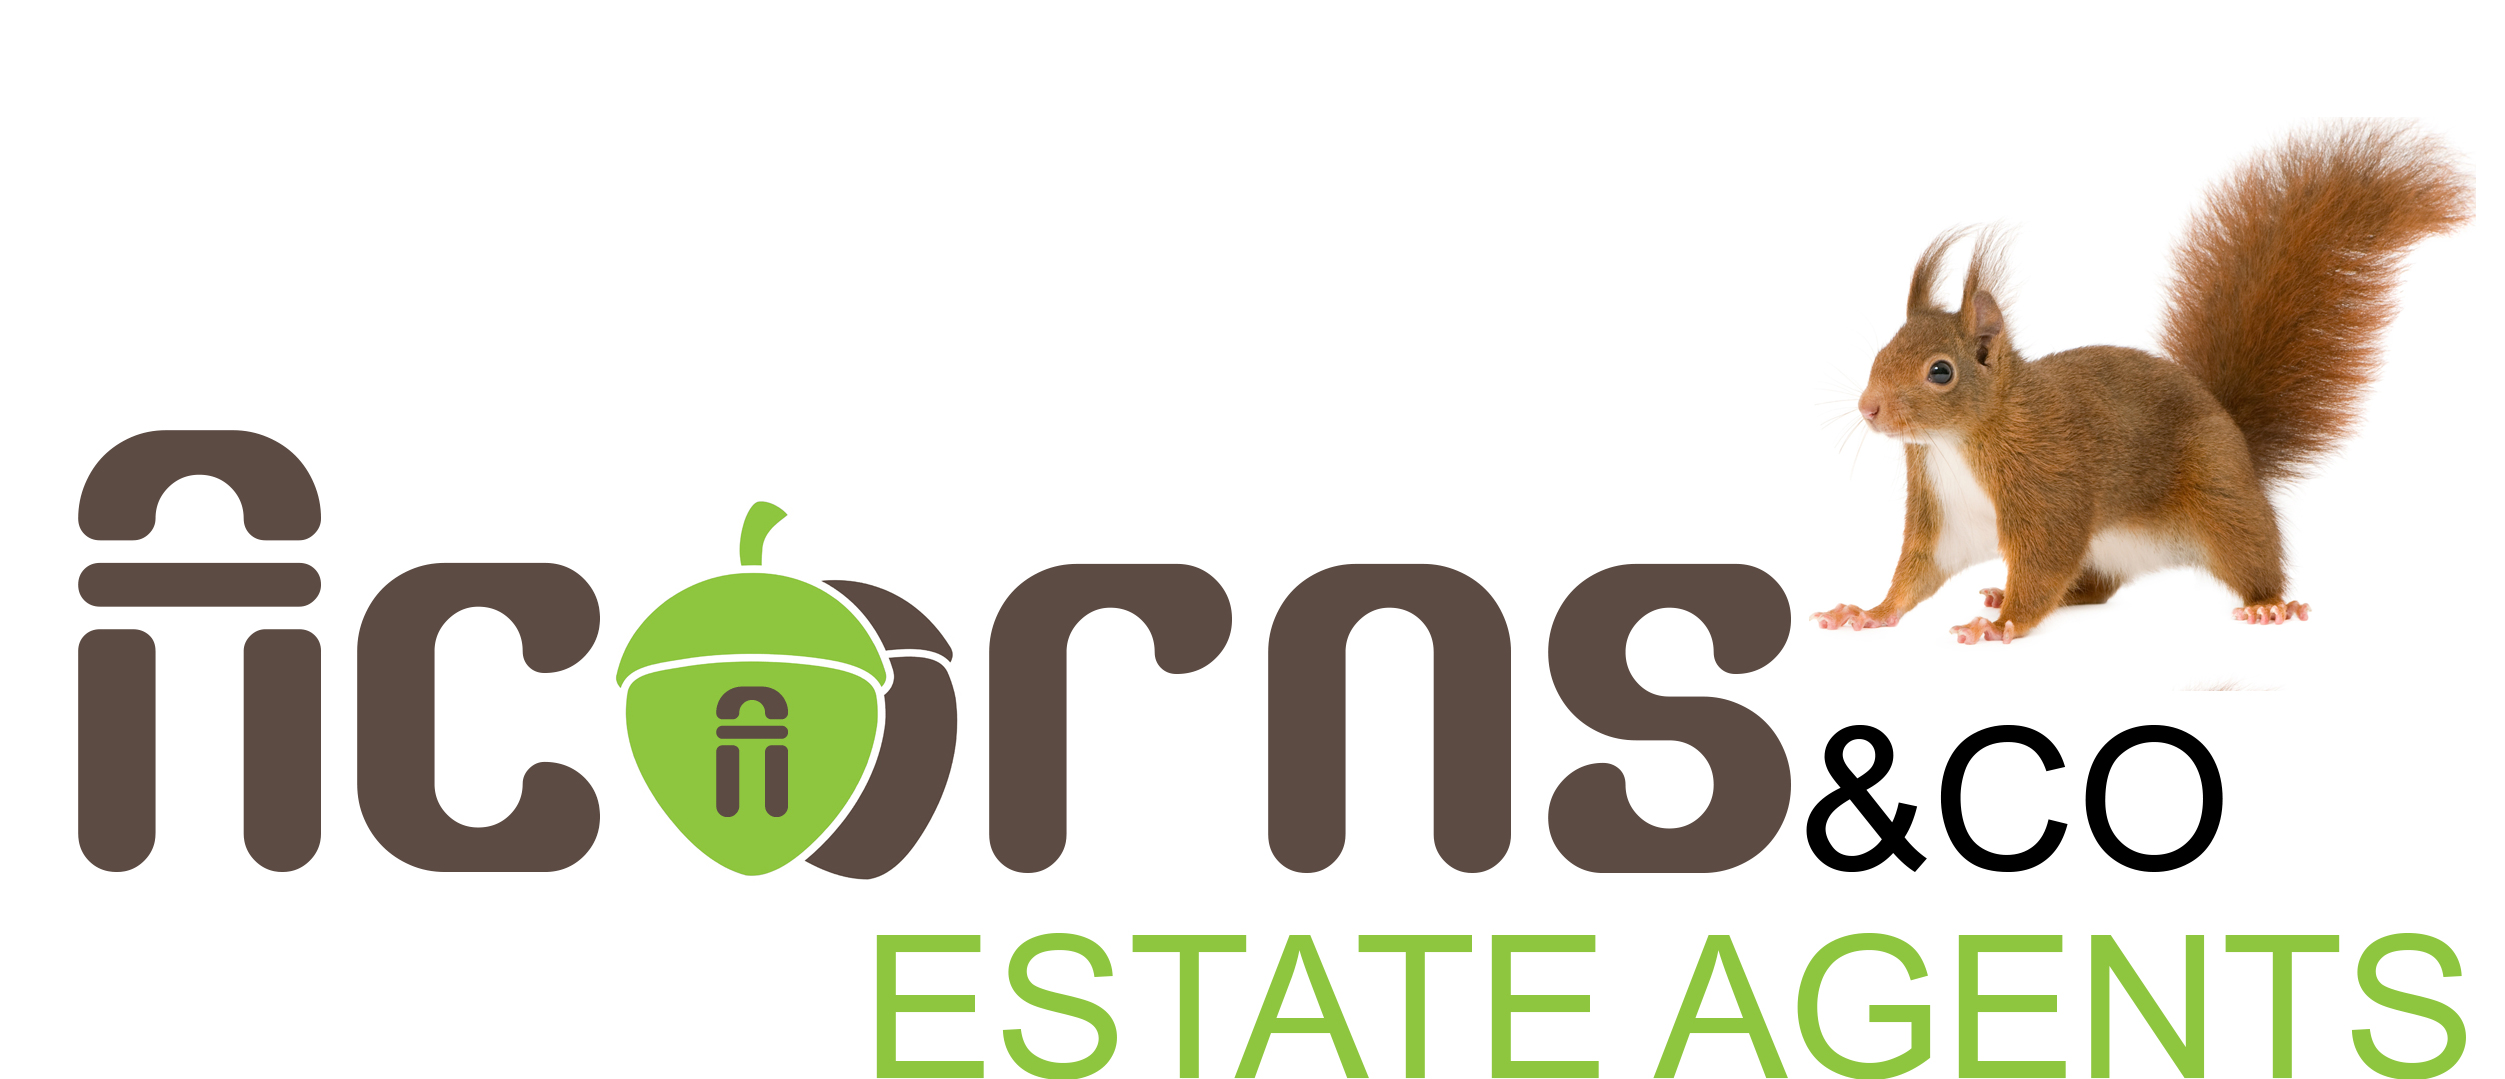 Read Acorns & Co Estate Agents Reviews